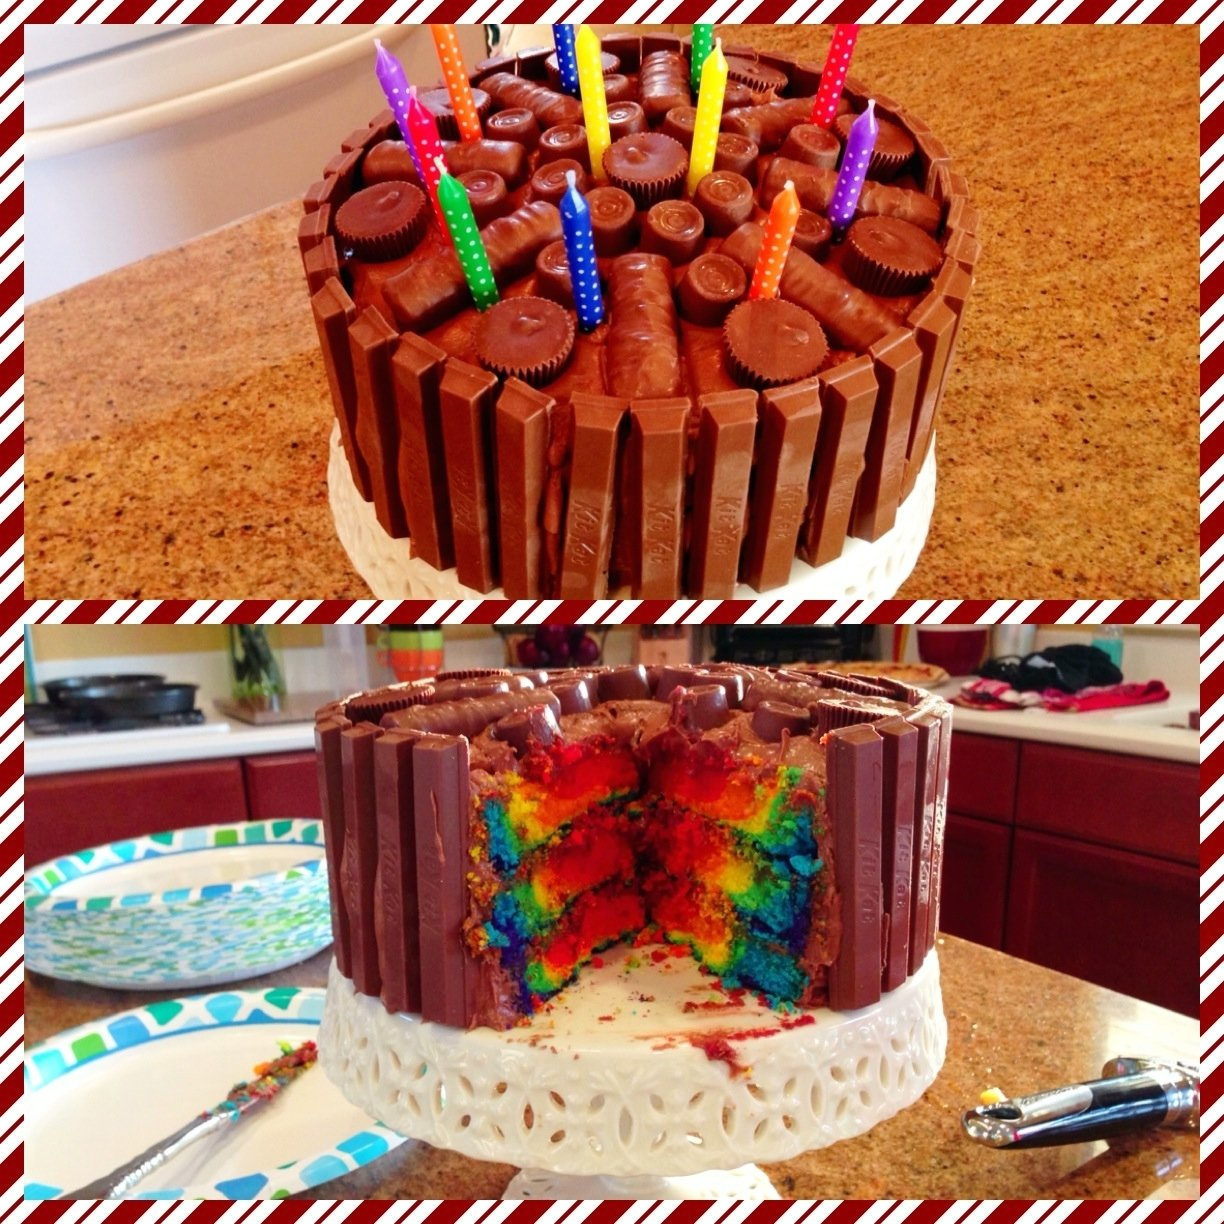 10 Pretty Birthday Ideas For 12 Year Old Boy Frisco Kids Caterpillar Cake Construction Site CakeCentralcom